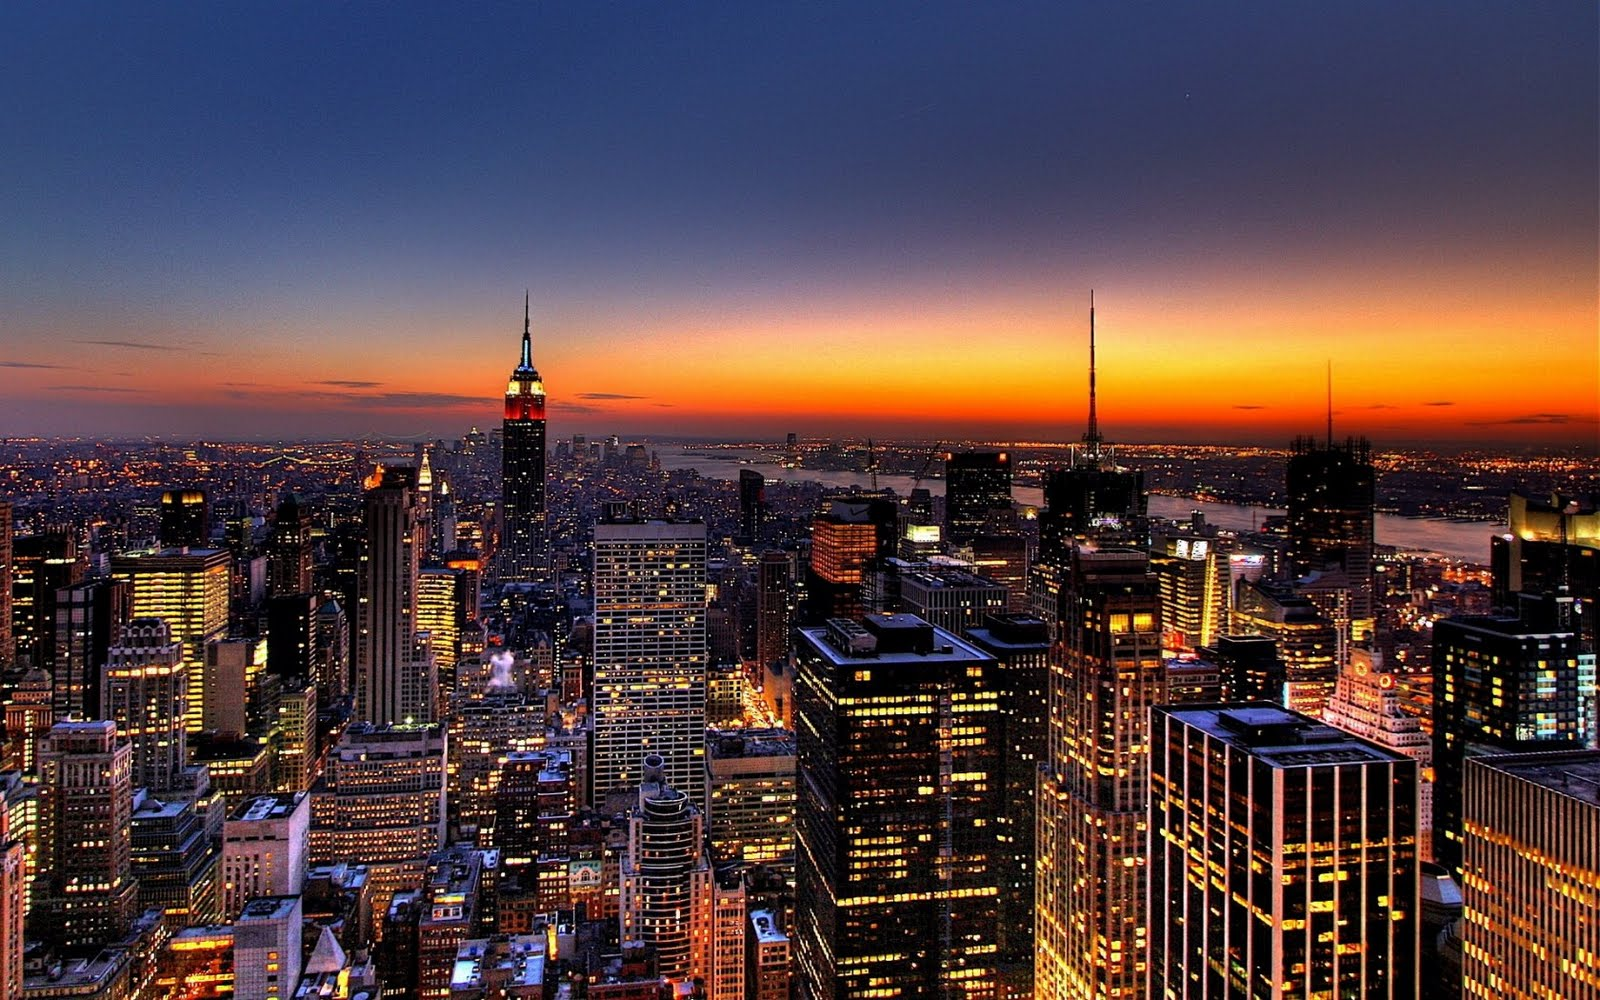 http://3.bp.blogspot.com/-rW6ax6mQA0Y/TeaWDb75YYI/AAAAAAAADkw/NvEFJ_ubiYU/s1600/new_york_by_night.jpg